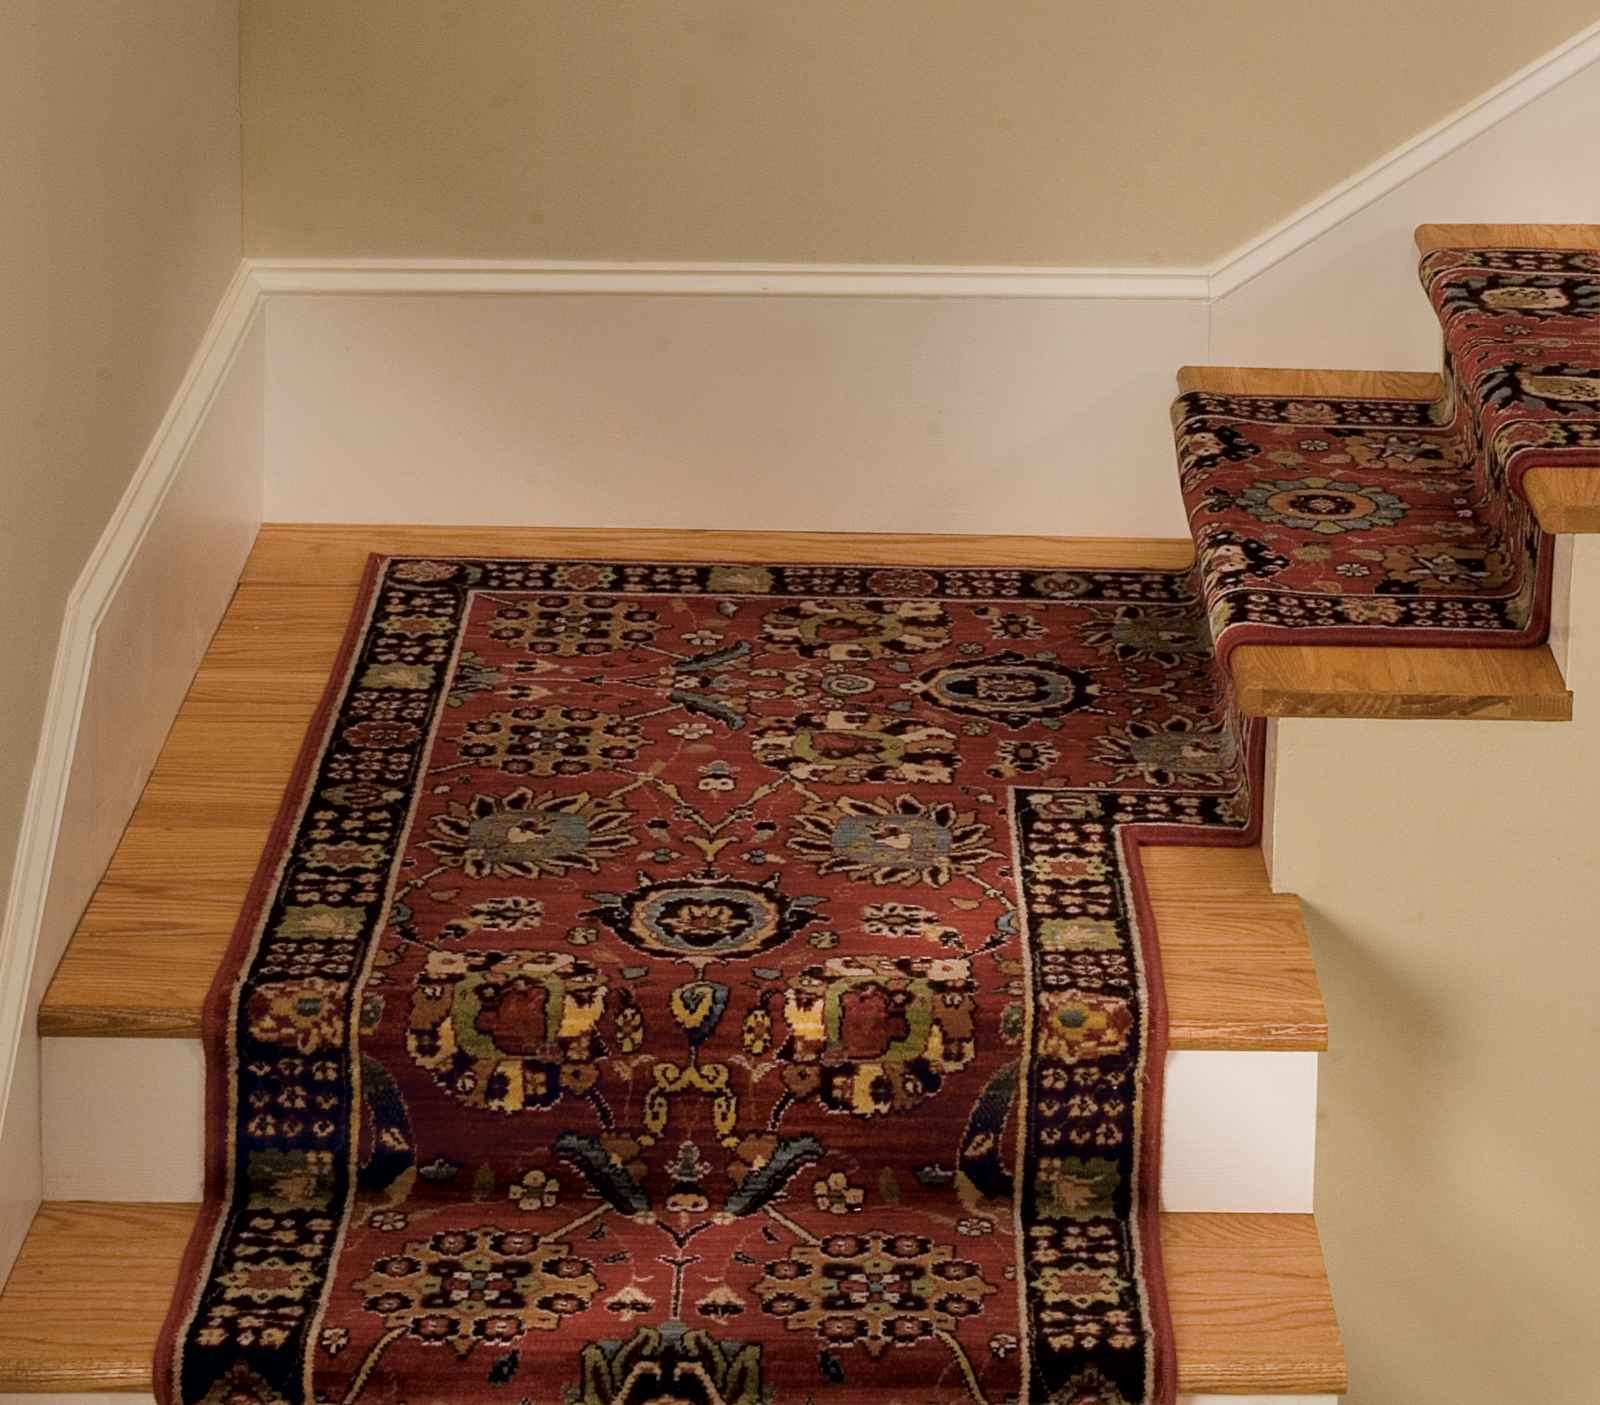 Carpet Stair Runner For Home New Home Pinterest Stair Treads Intended For Oriental Carpet Stair Treads (View 4 of 15)